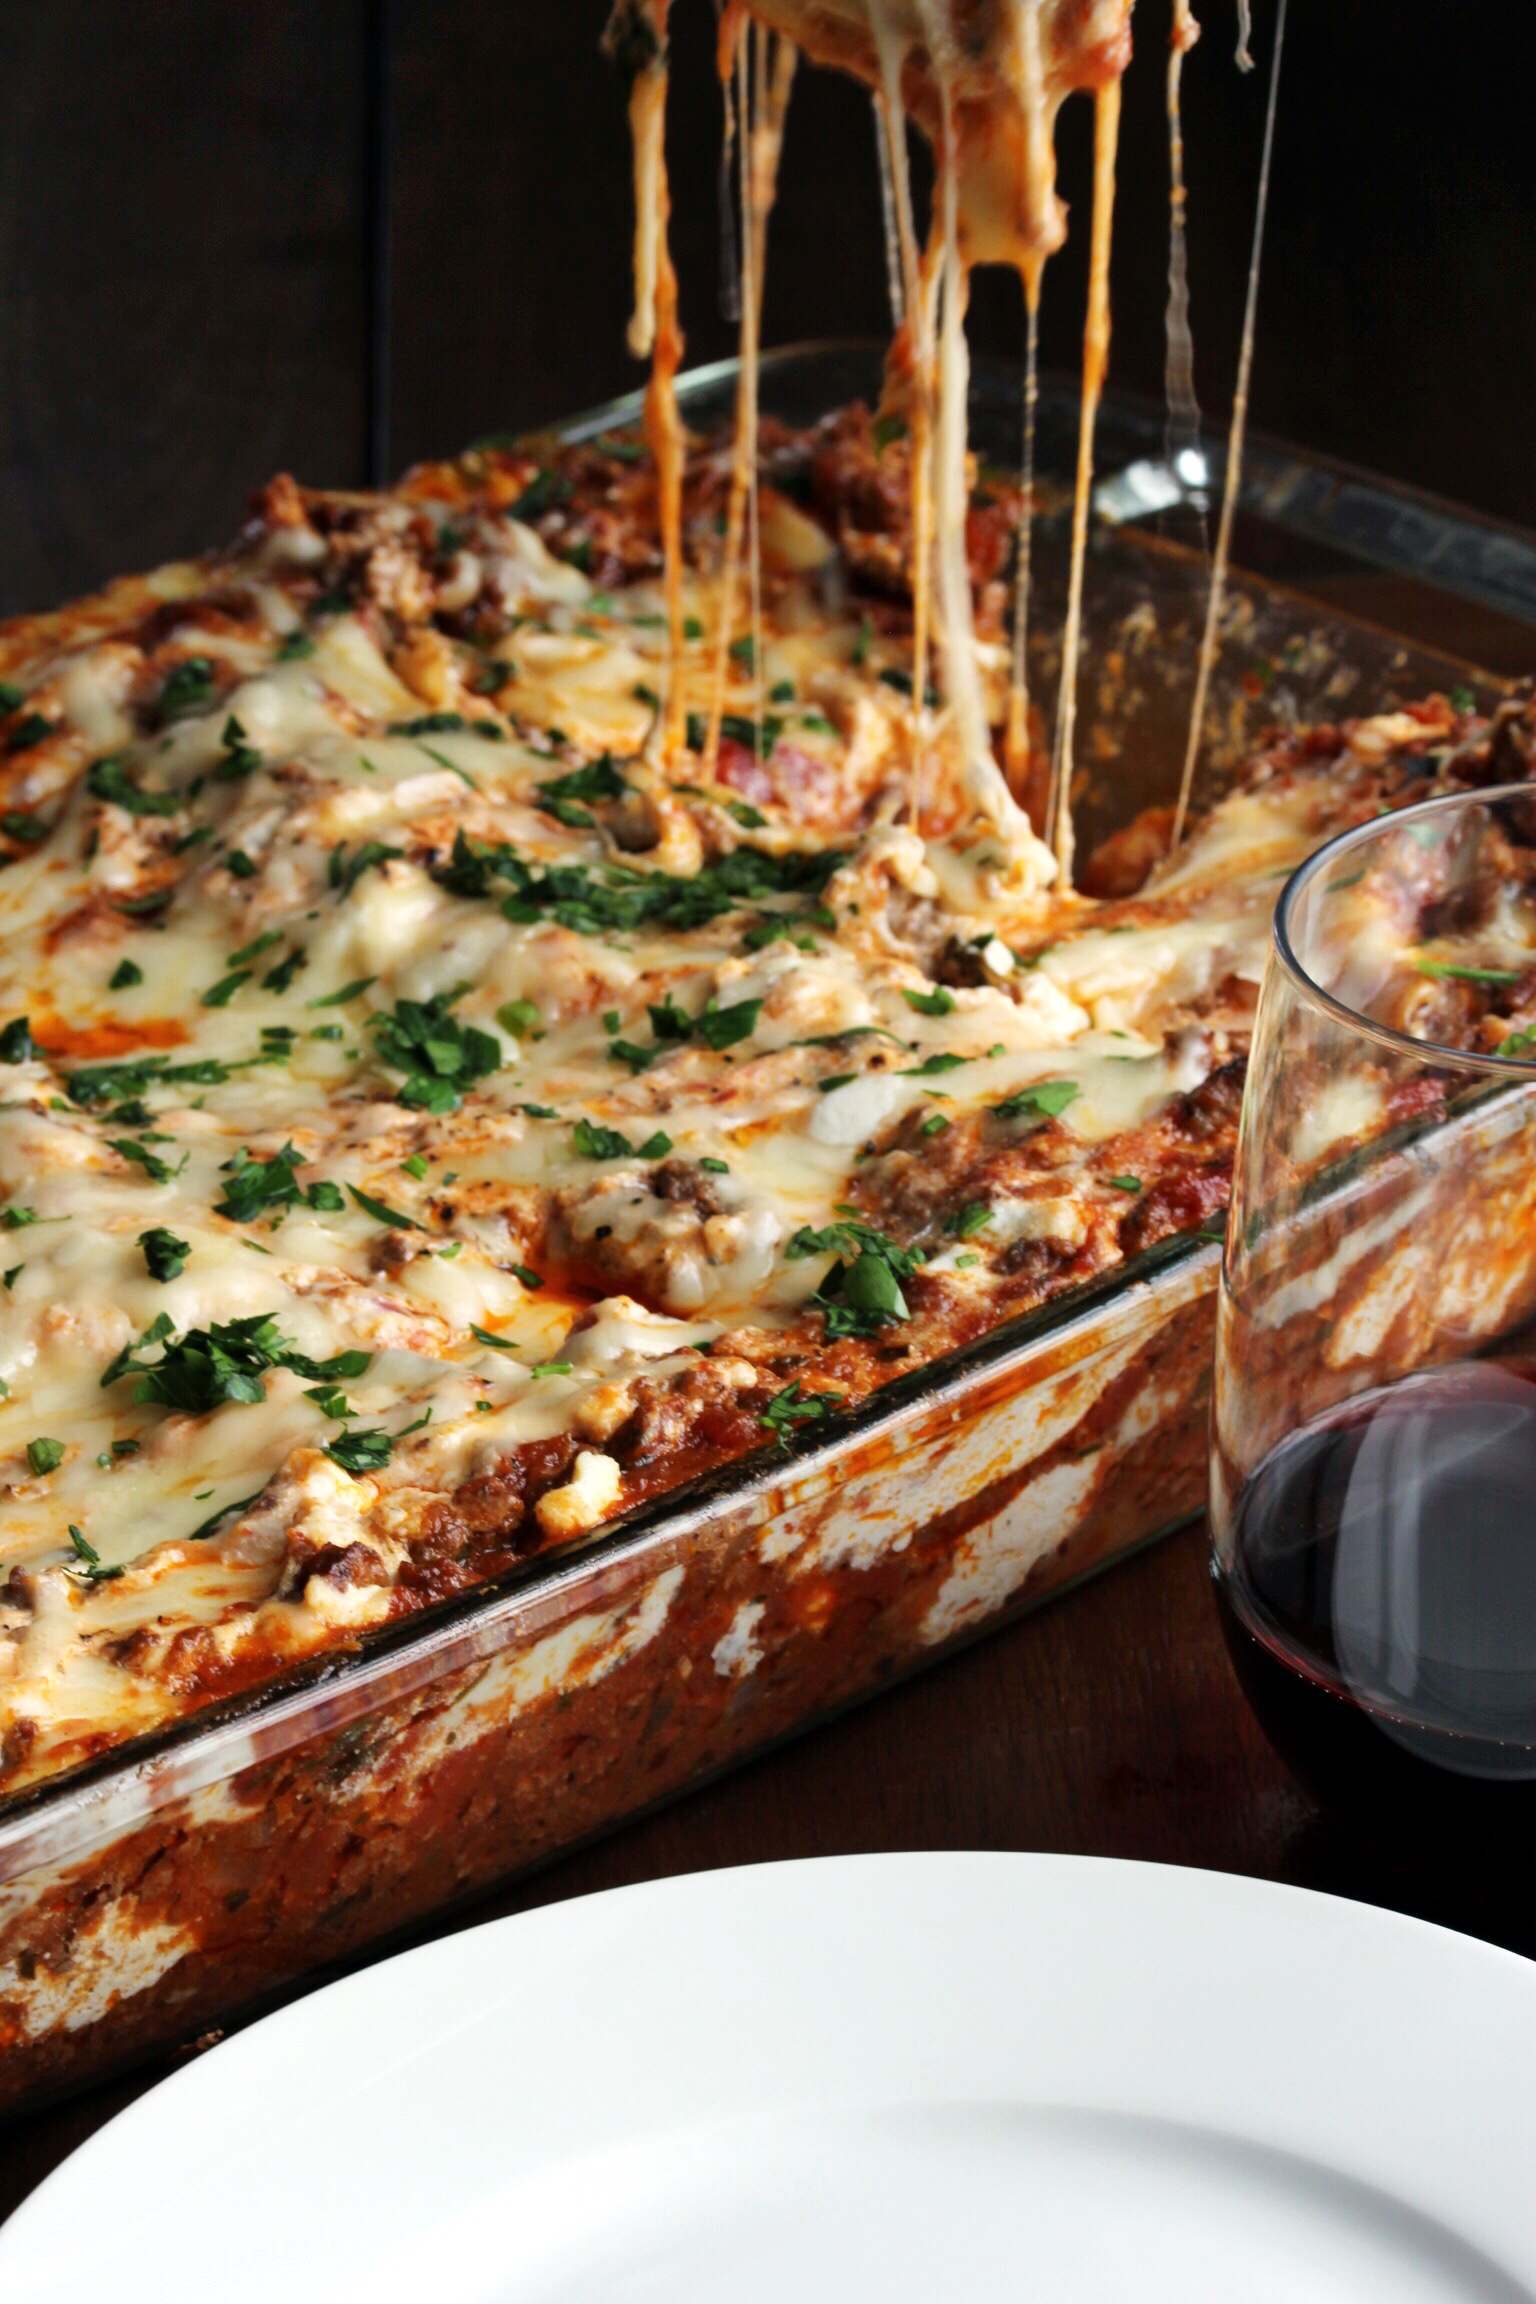 Jon's four-cheese lasagna - The Pastiche